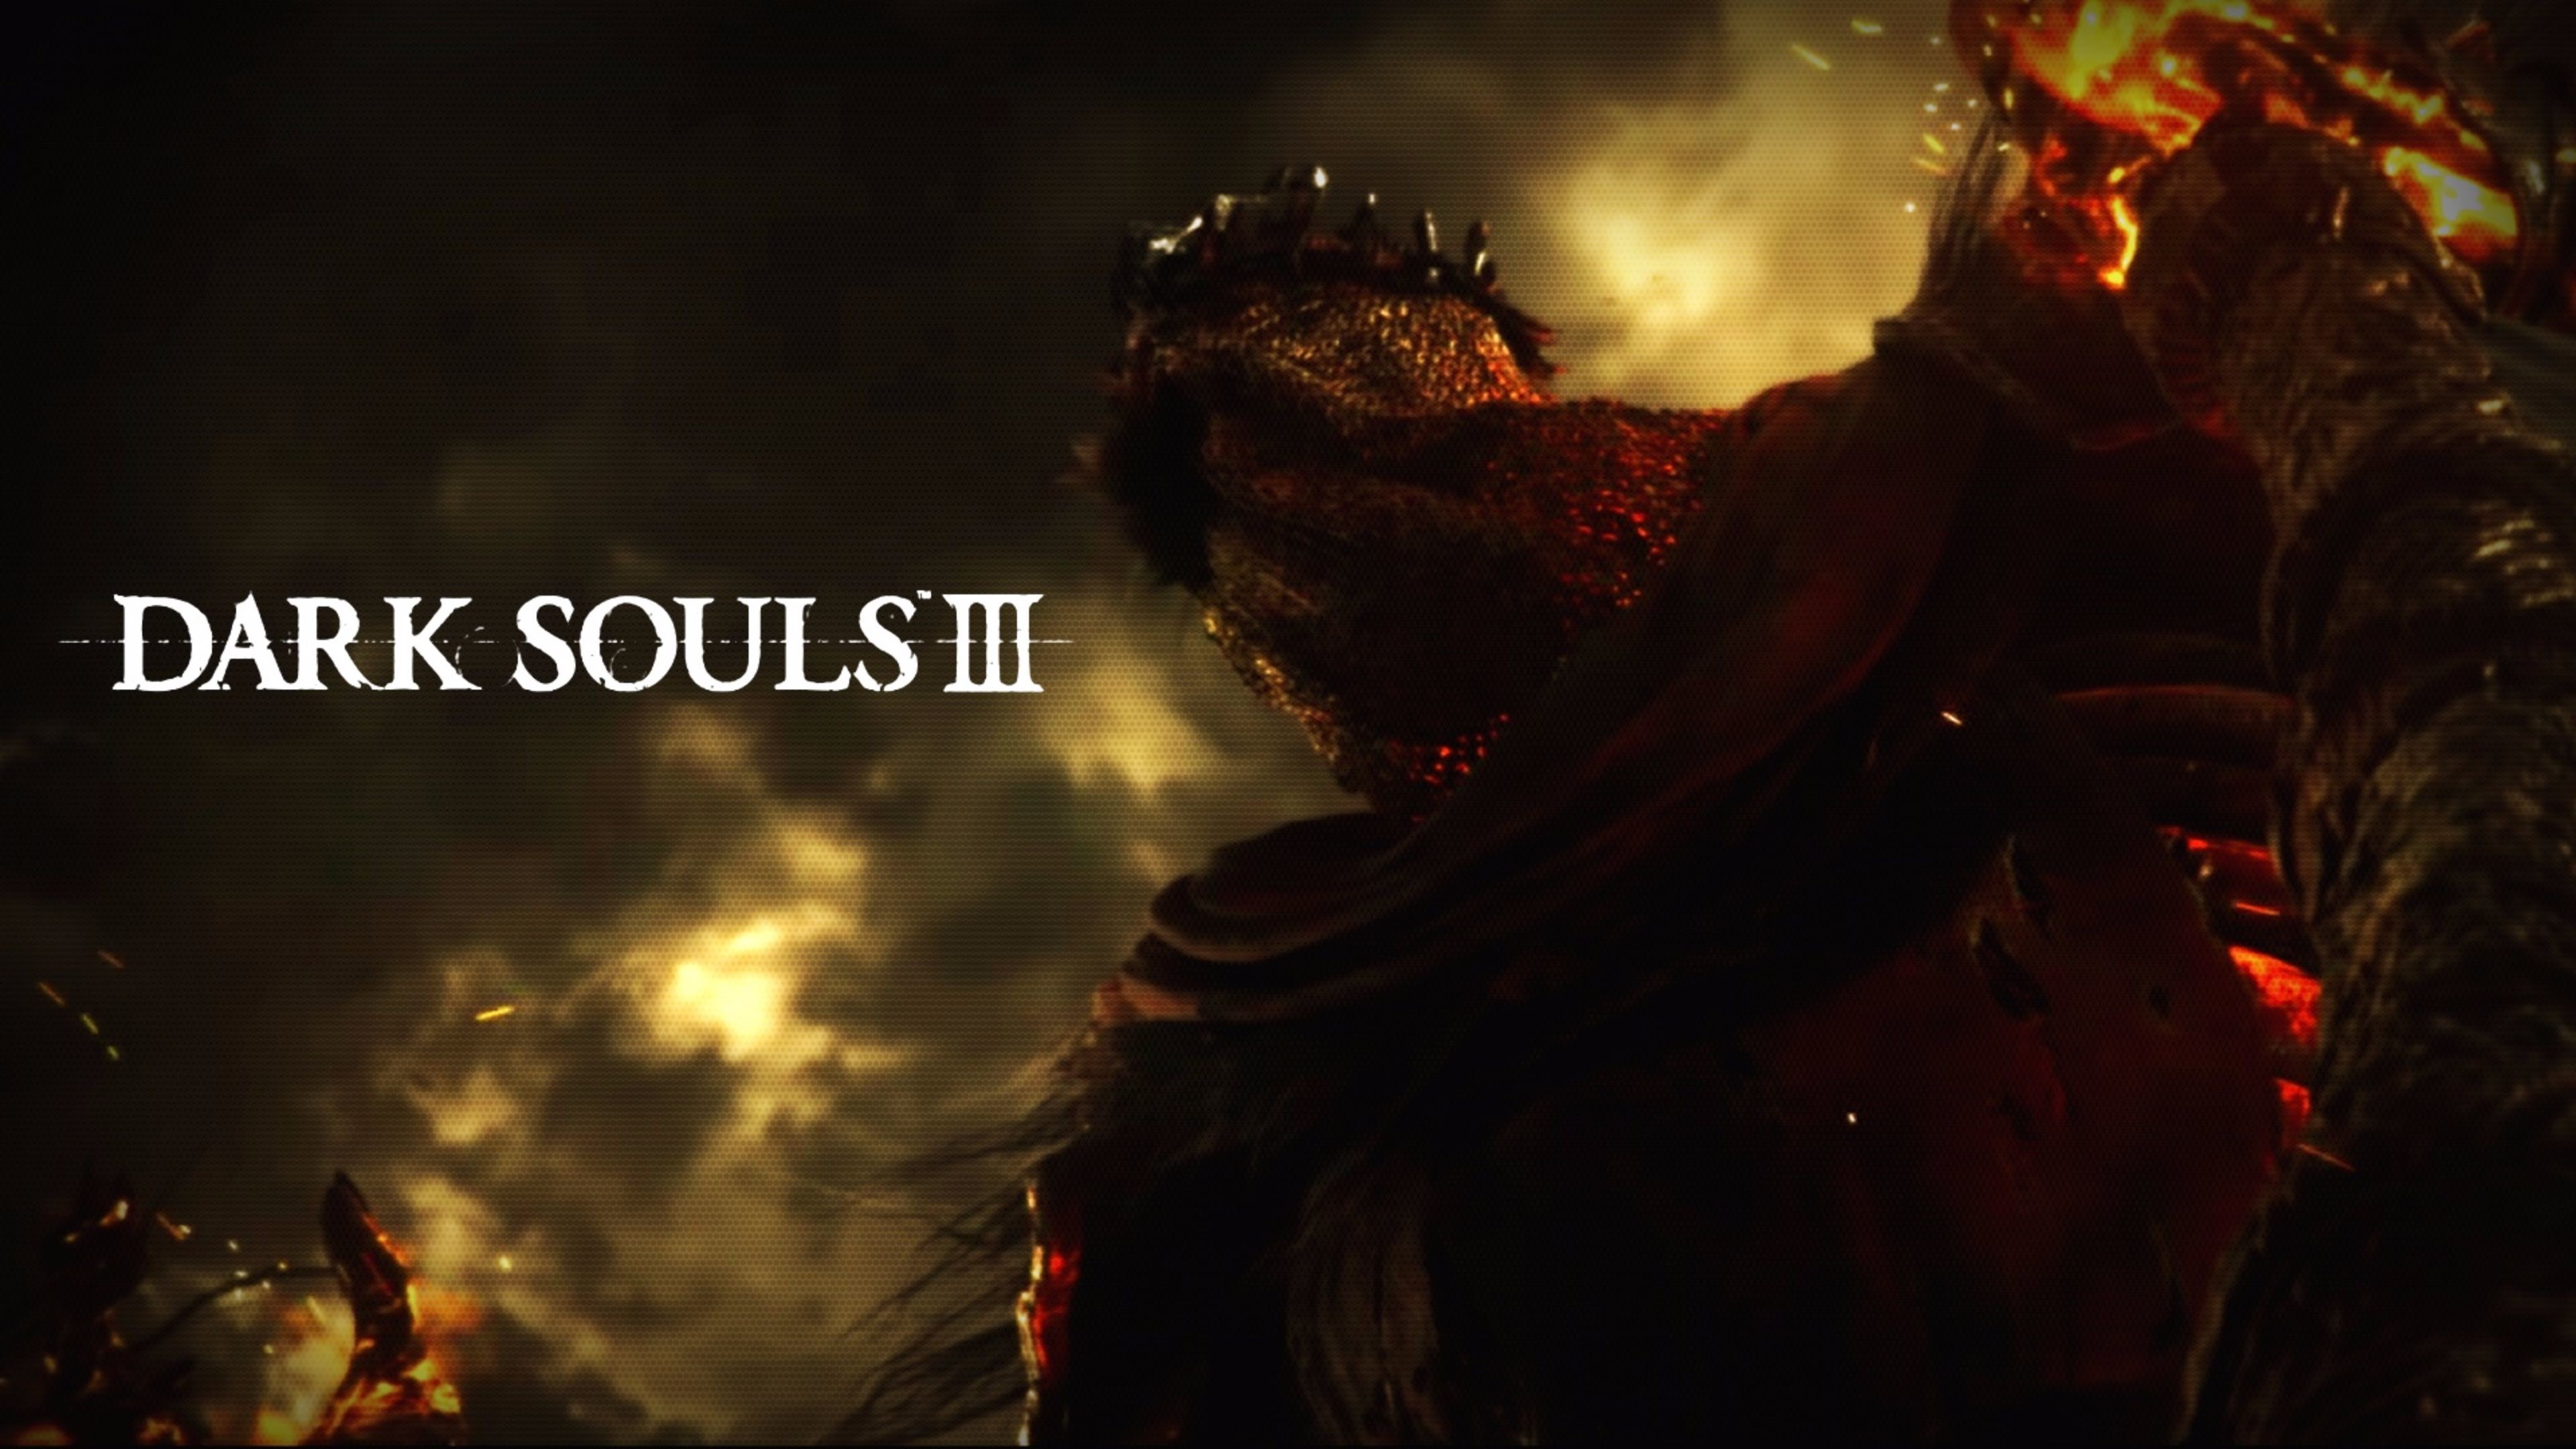 Dark Souls 3 4K UHD Wallpaper 3840×2160